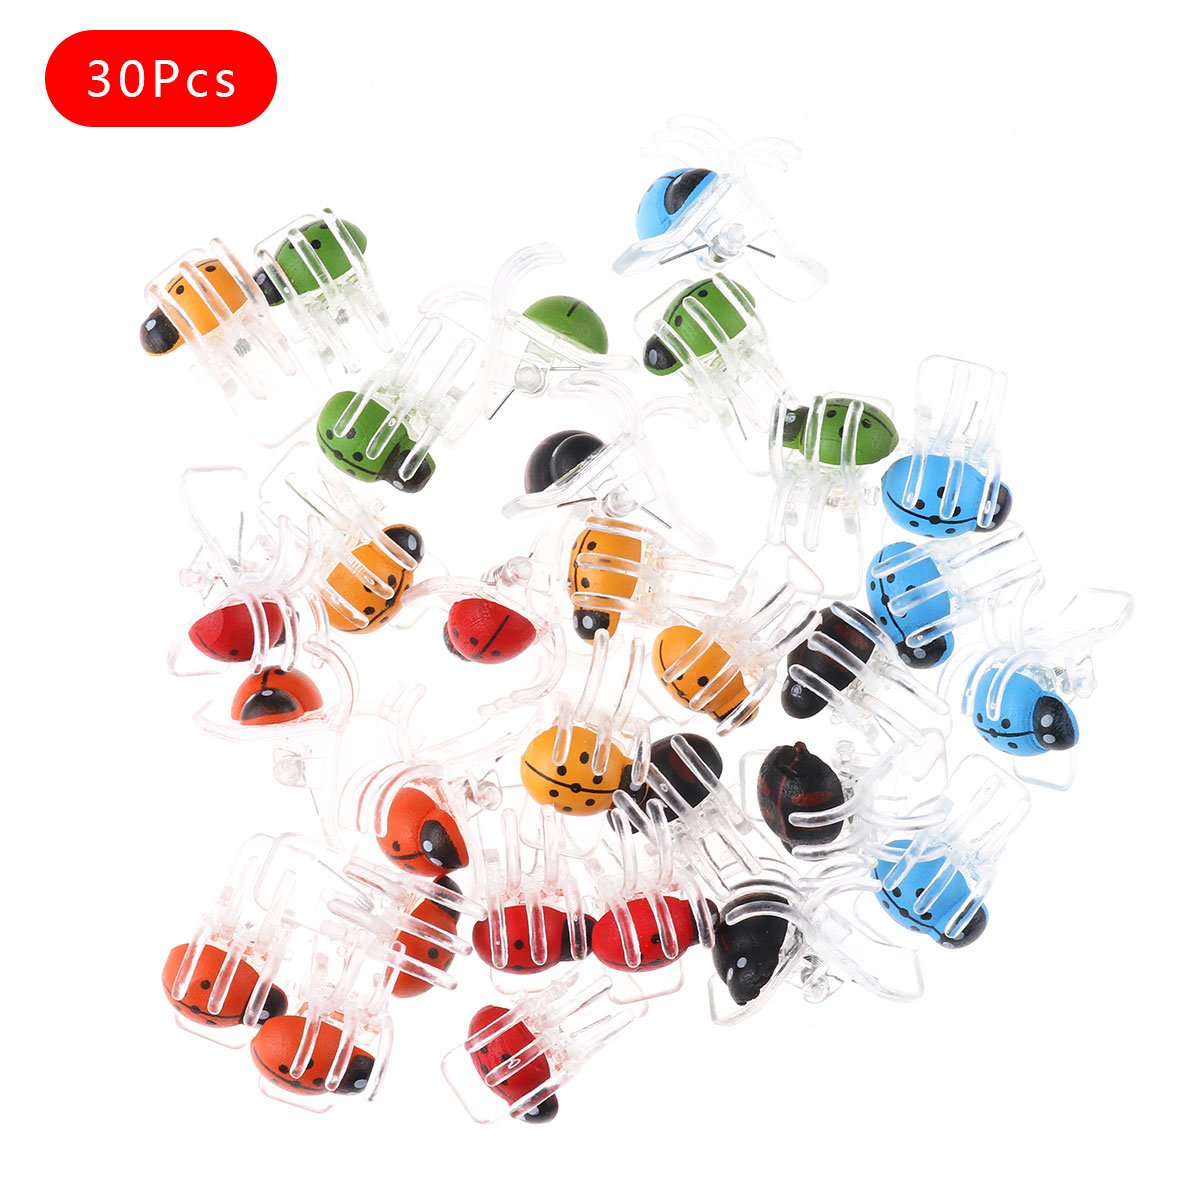 iEFiEL 30 Pack Cute Ladybug Orchid Clips Upright Supporter for Plant Stem Garden Flower Stalks Vines